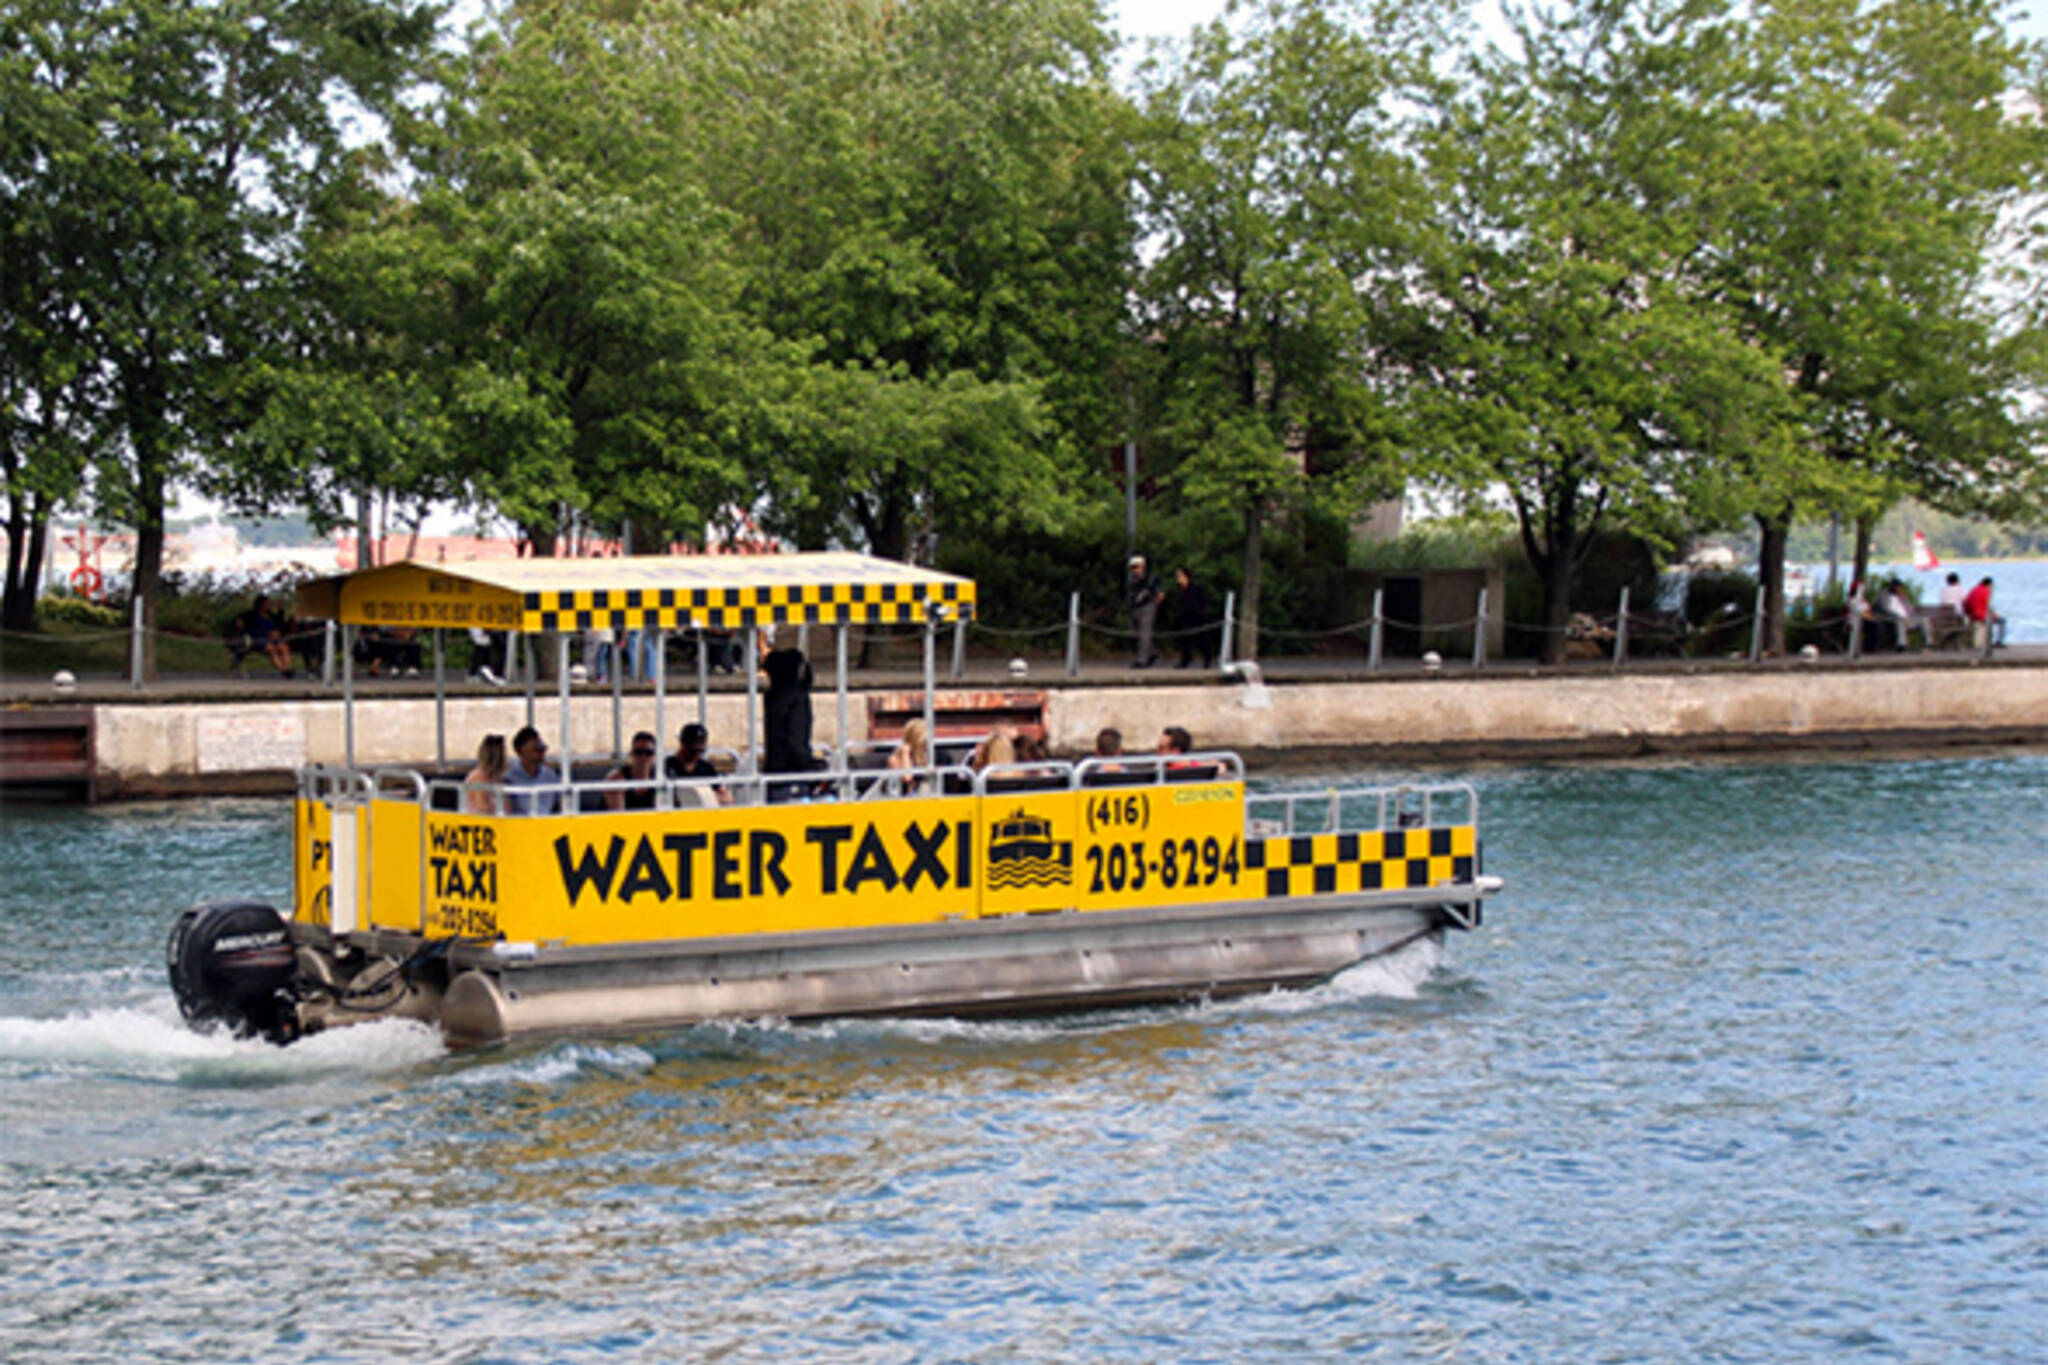 water taxi toronto